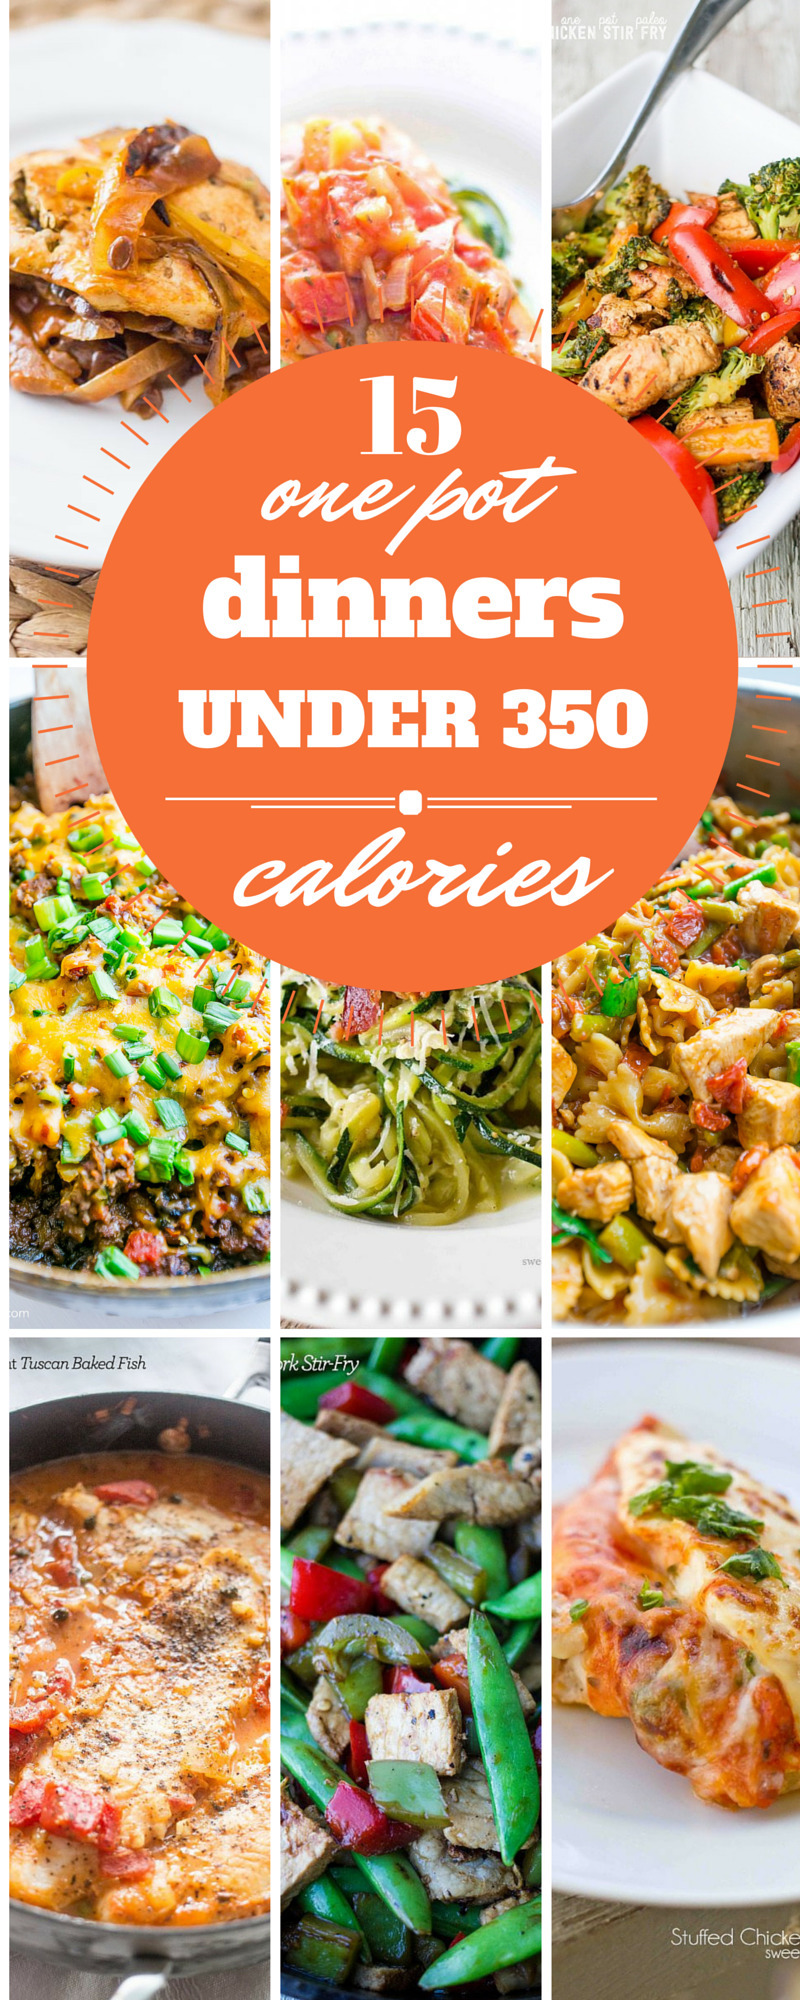 15 Best One Pot Dinners Under 350 Calories